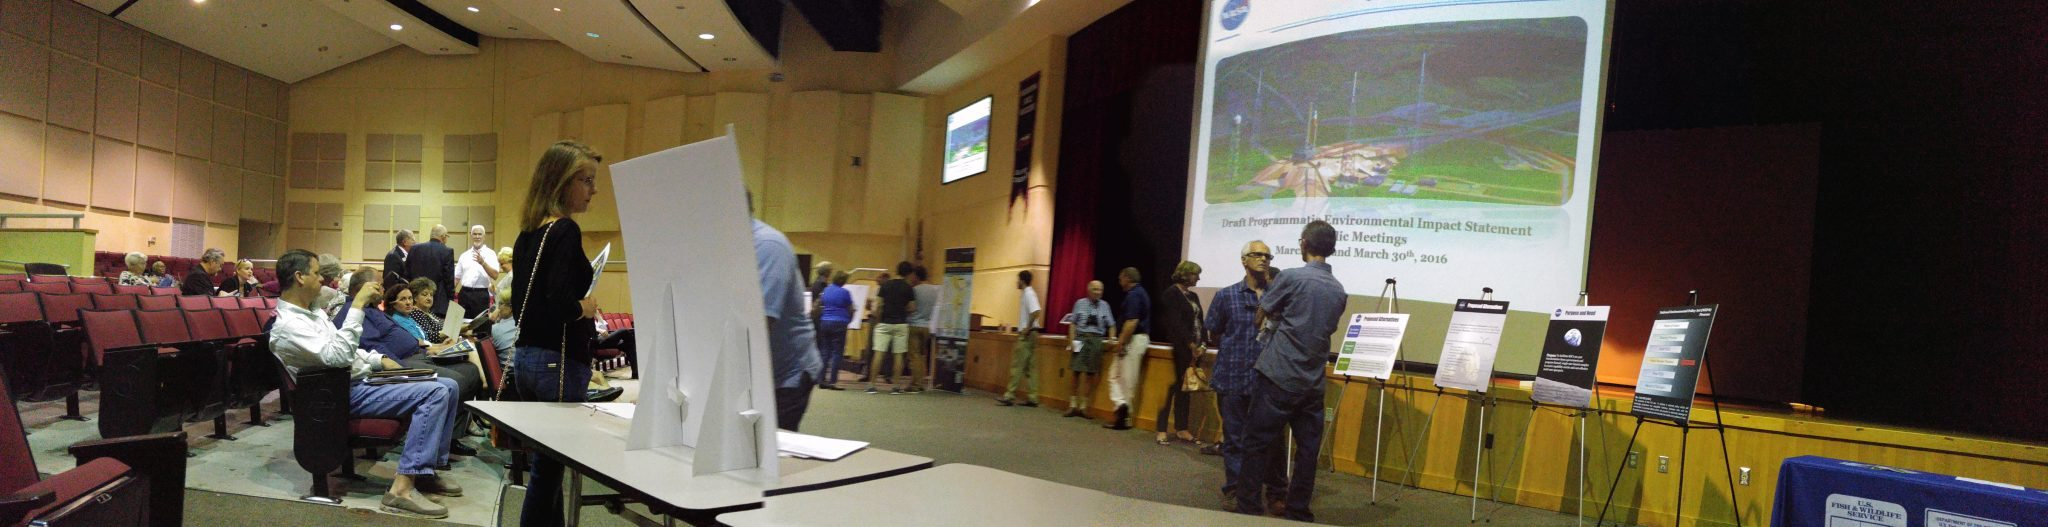 Kennedy Space Center Environmental Impact Public Meeting